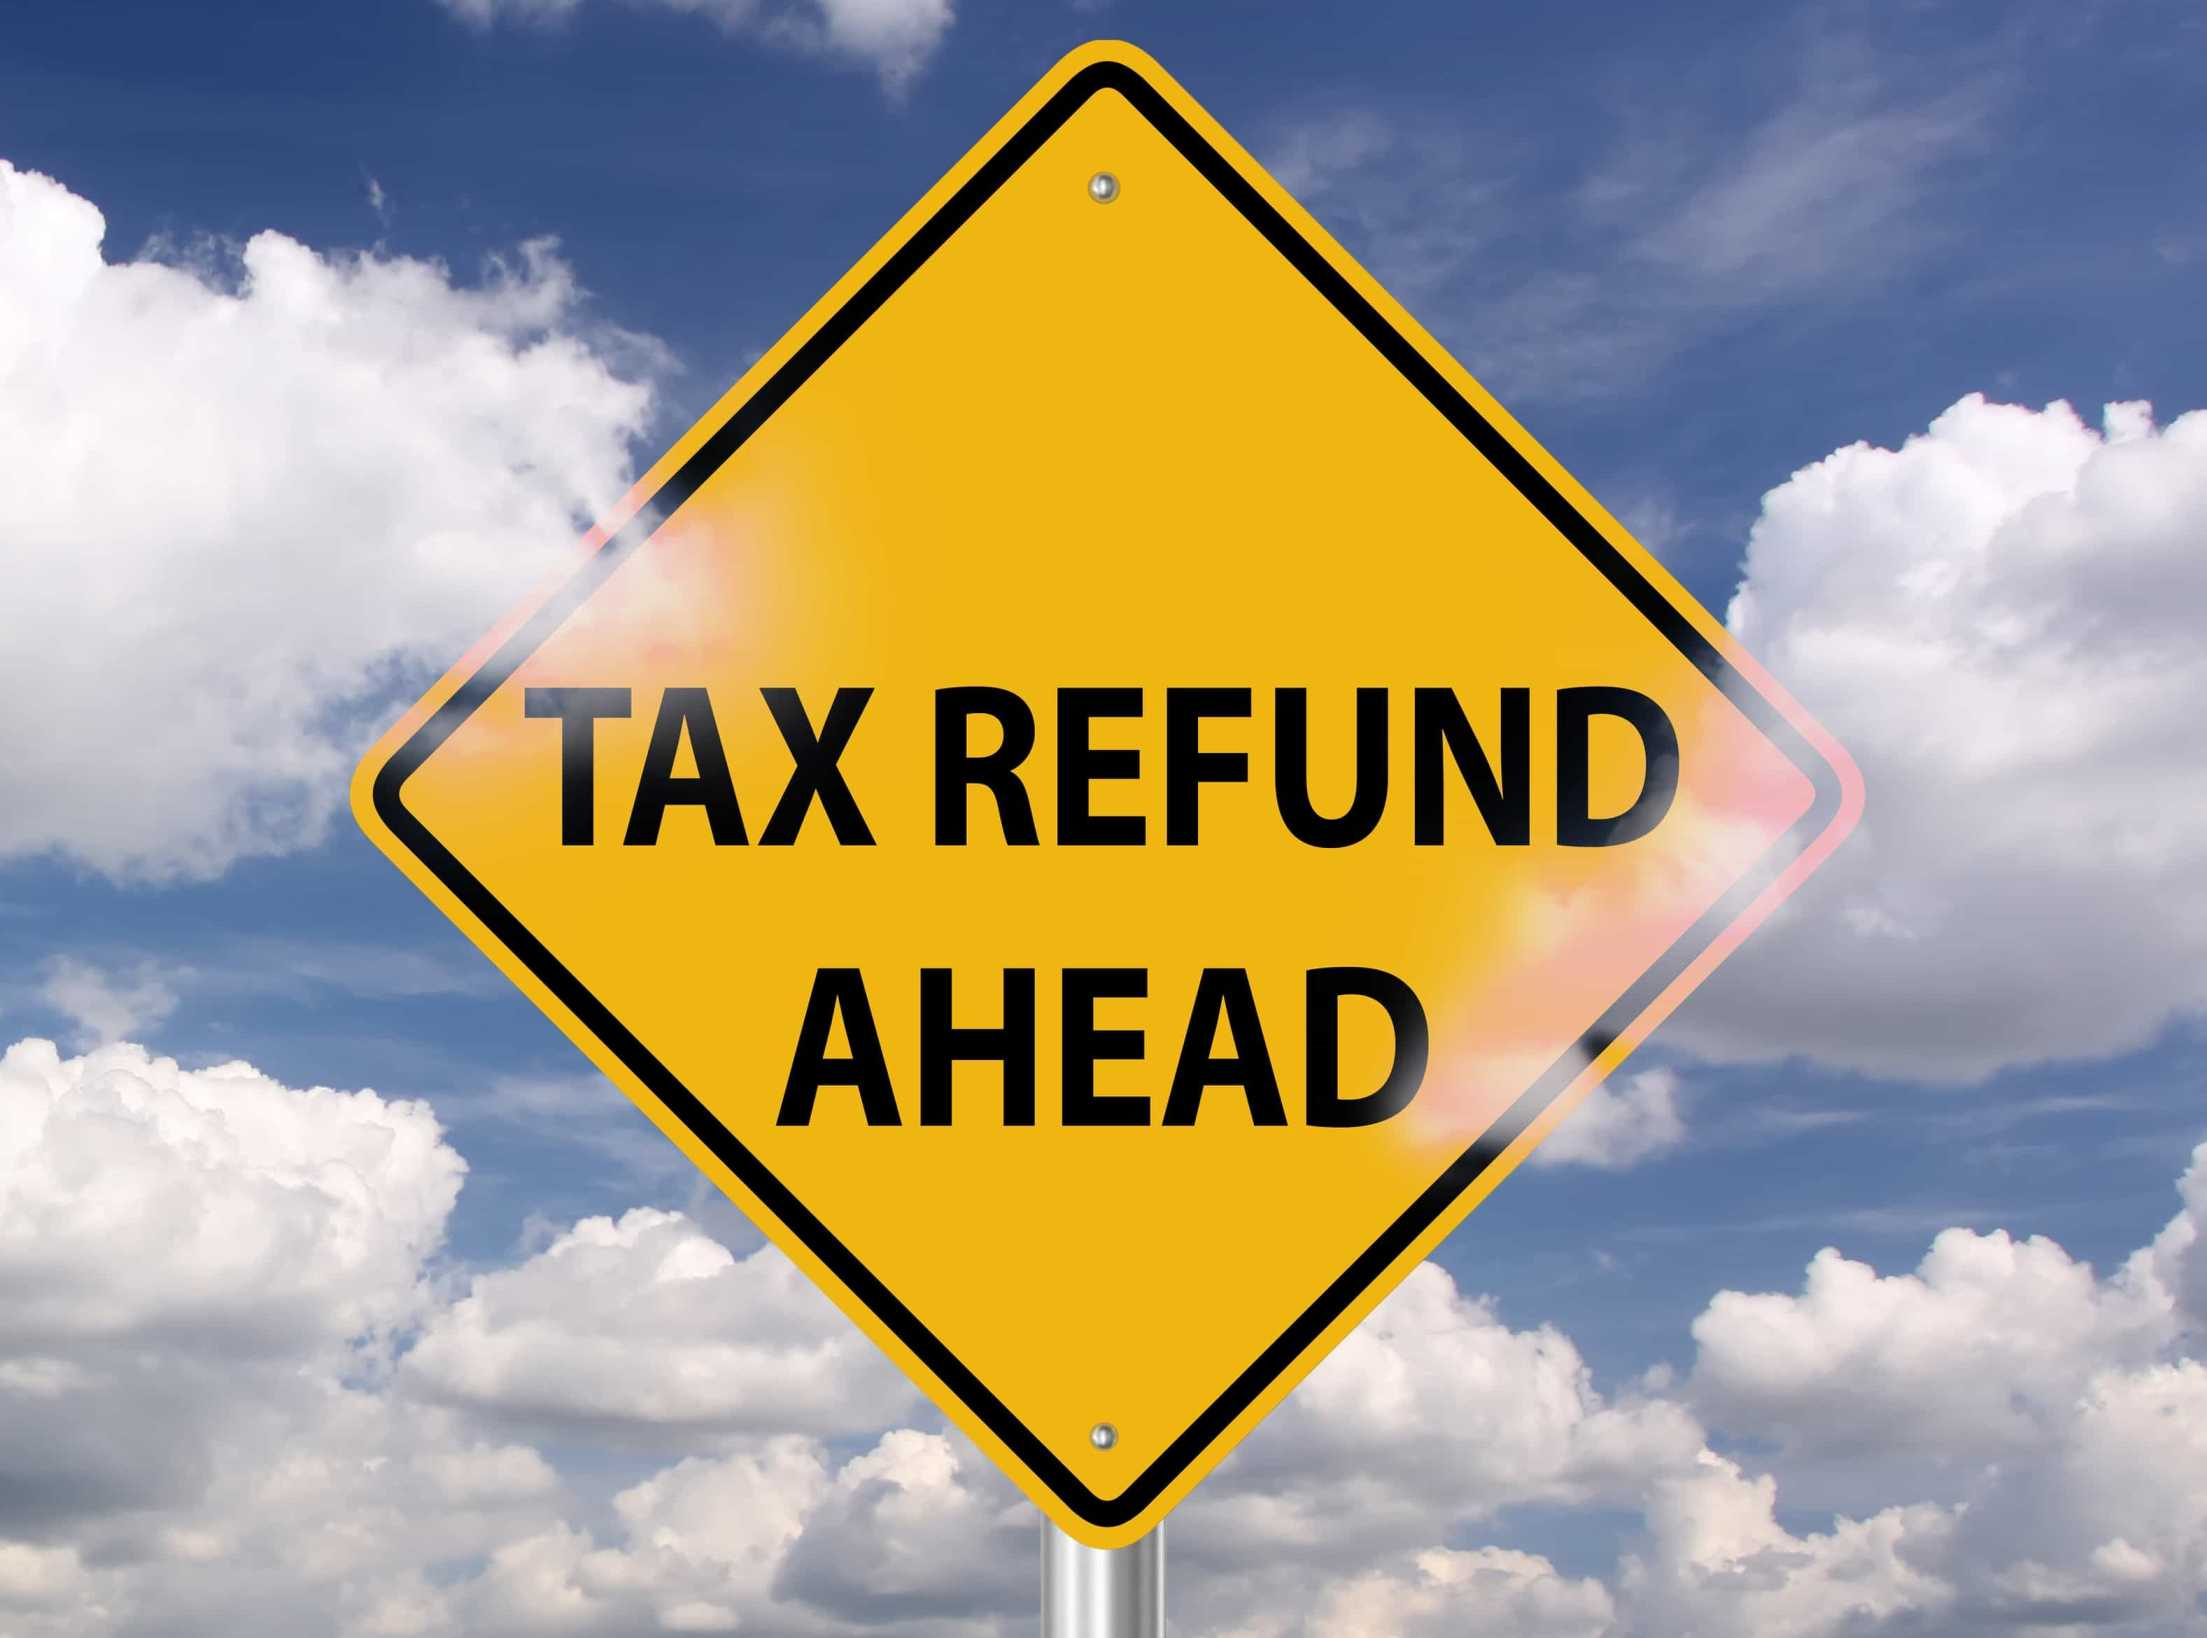 tax refund ahead sign   How to claim tax back - Taxfiler